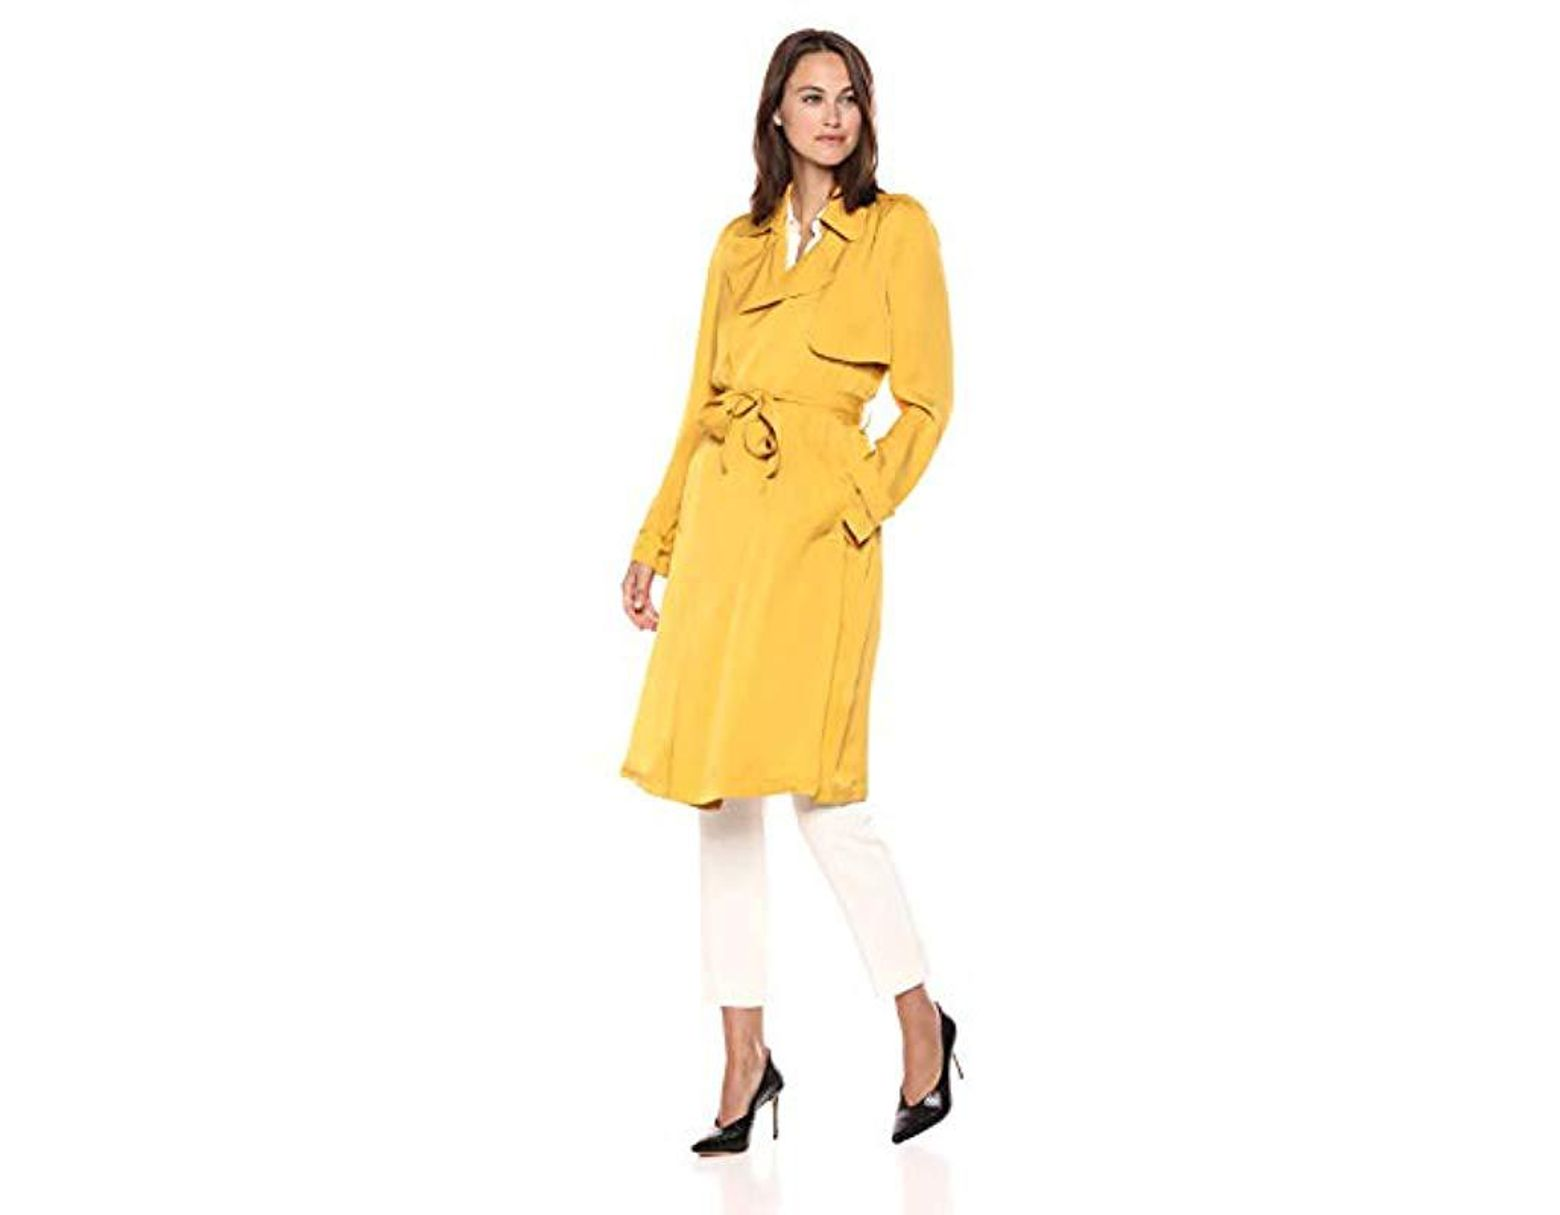 d89e59be73993 Women's Yellow Belted Oaklane Trench Coat